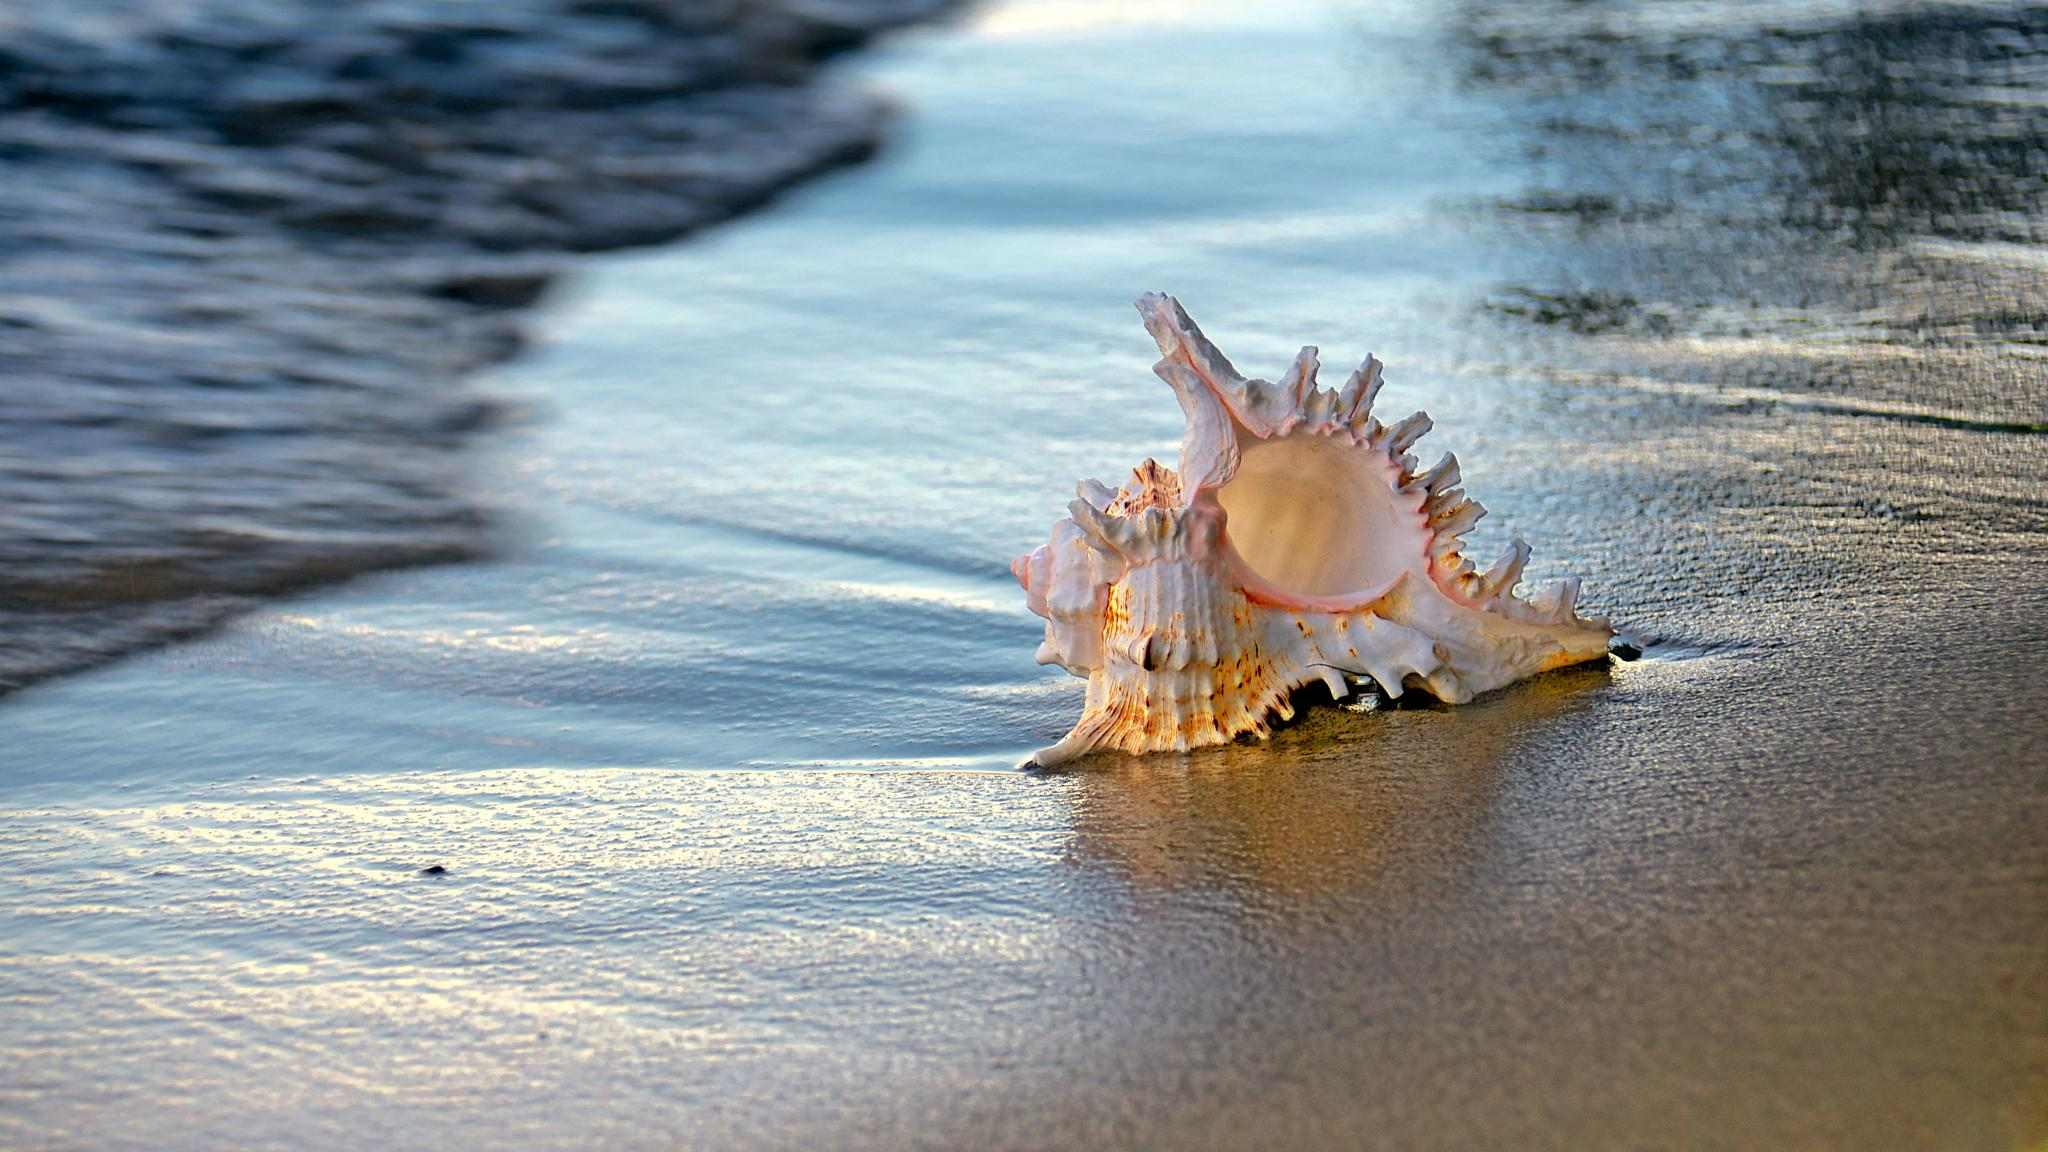 Shell by Eduard Gorobets